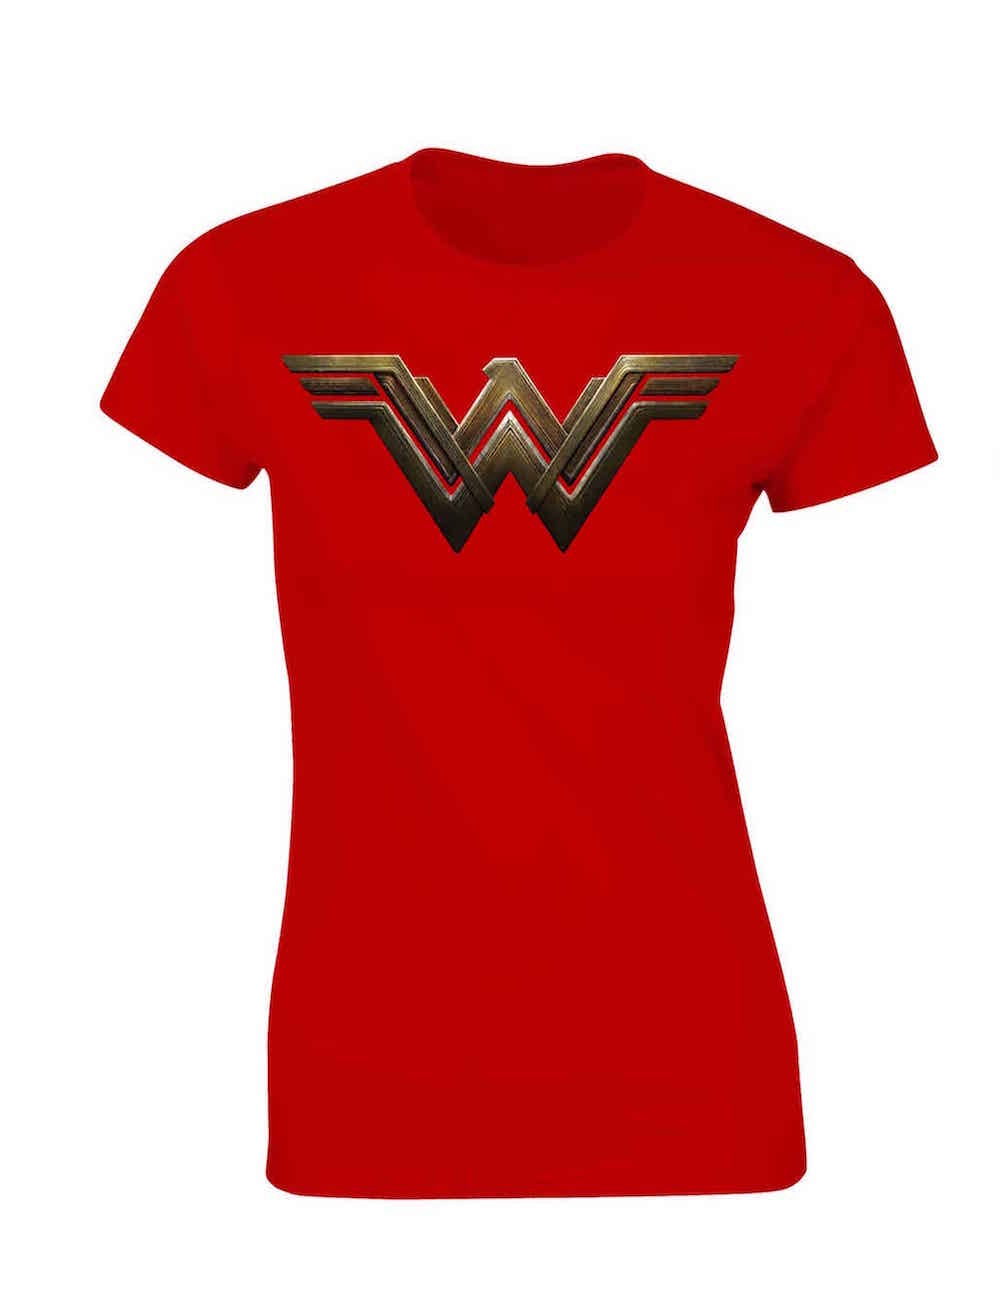 LOGO WONDER WOMAN CAMISETA ROJA CHICA T-XL BATMAN VS SUPERMAN DC